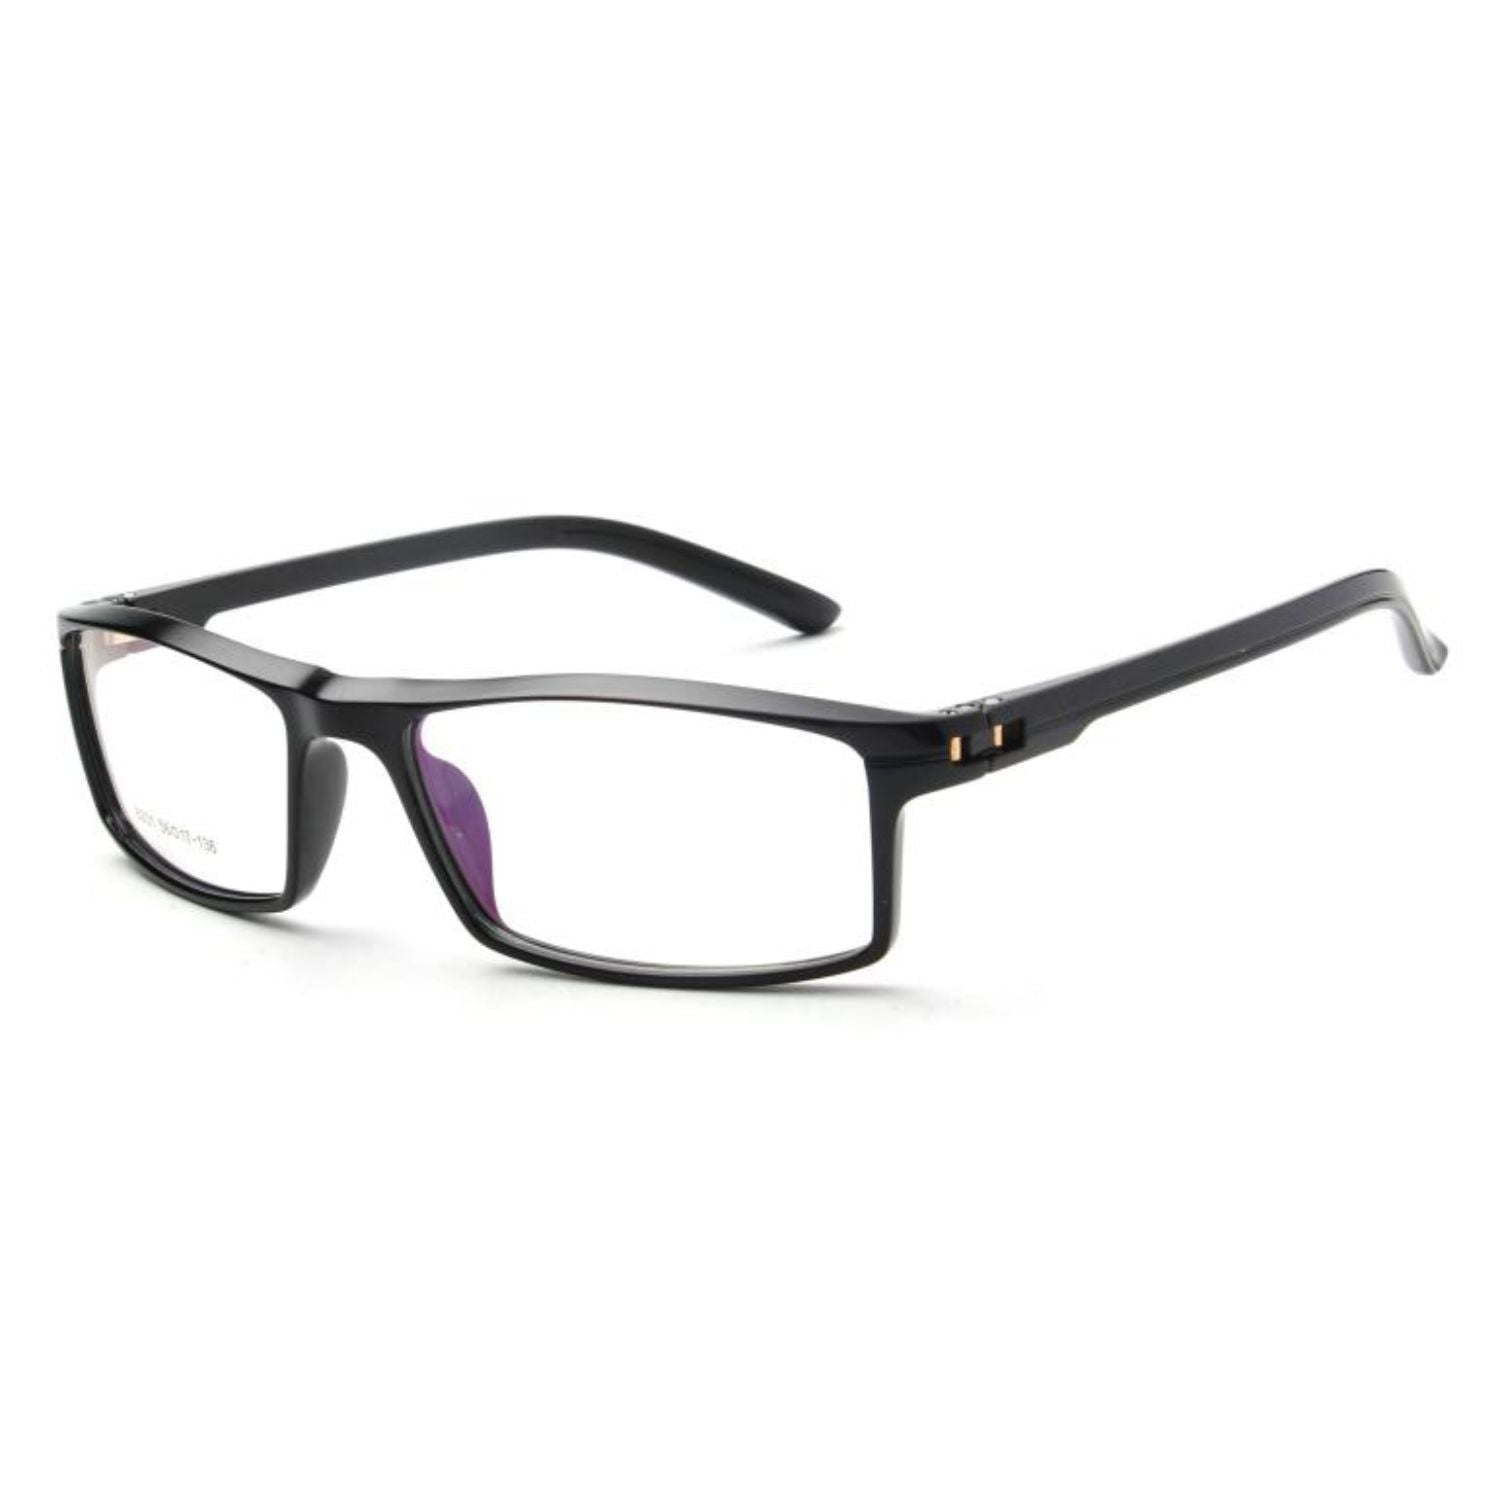 OTR1 - Classic Rectangle Optical Glasses - Iris Fashion Inc. | Wholesale Sunglasses and Glasses